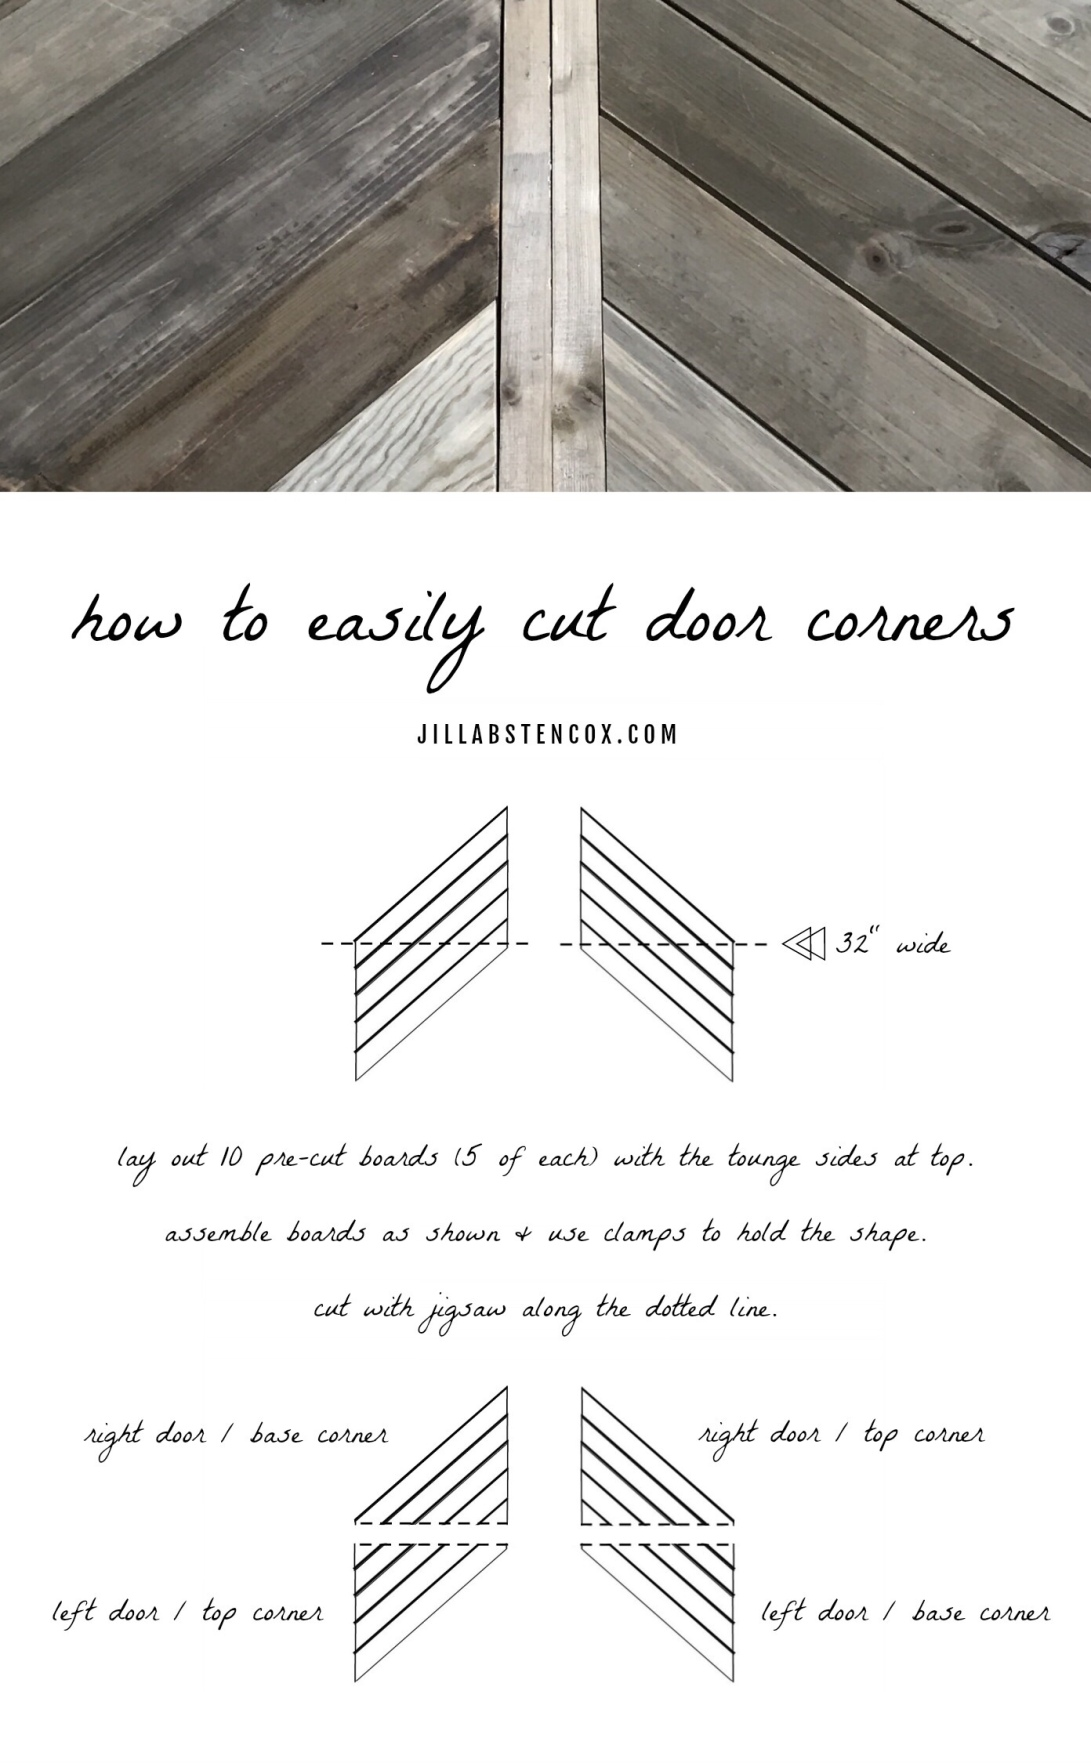 How to Easily Cut Door Corners